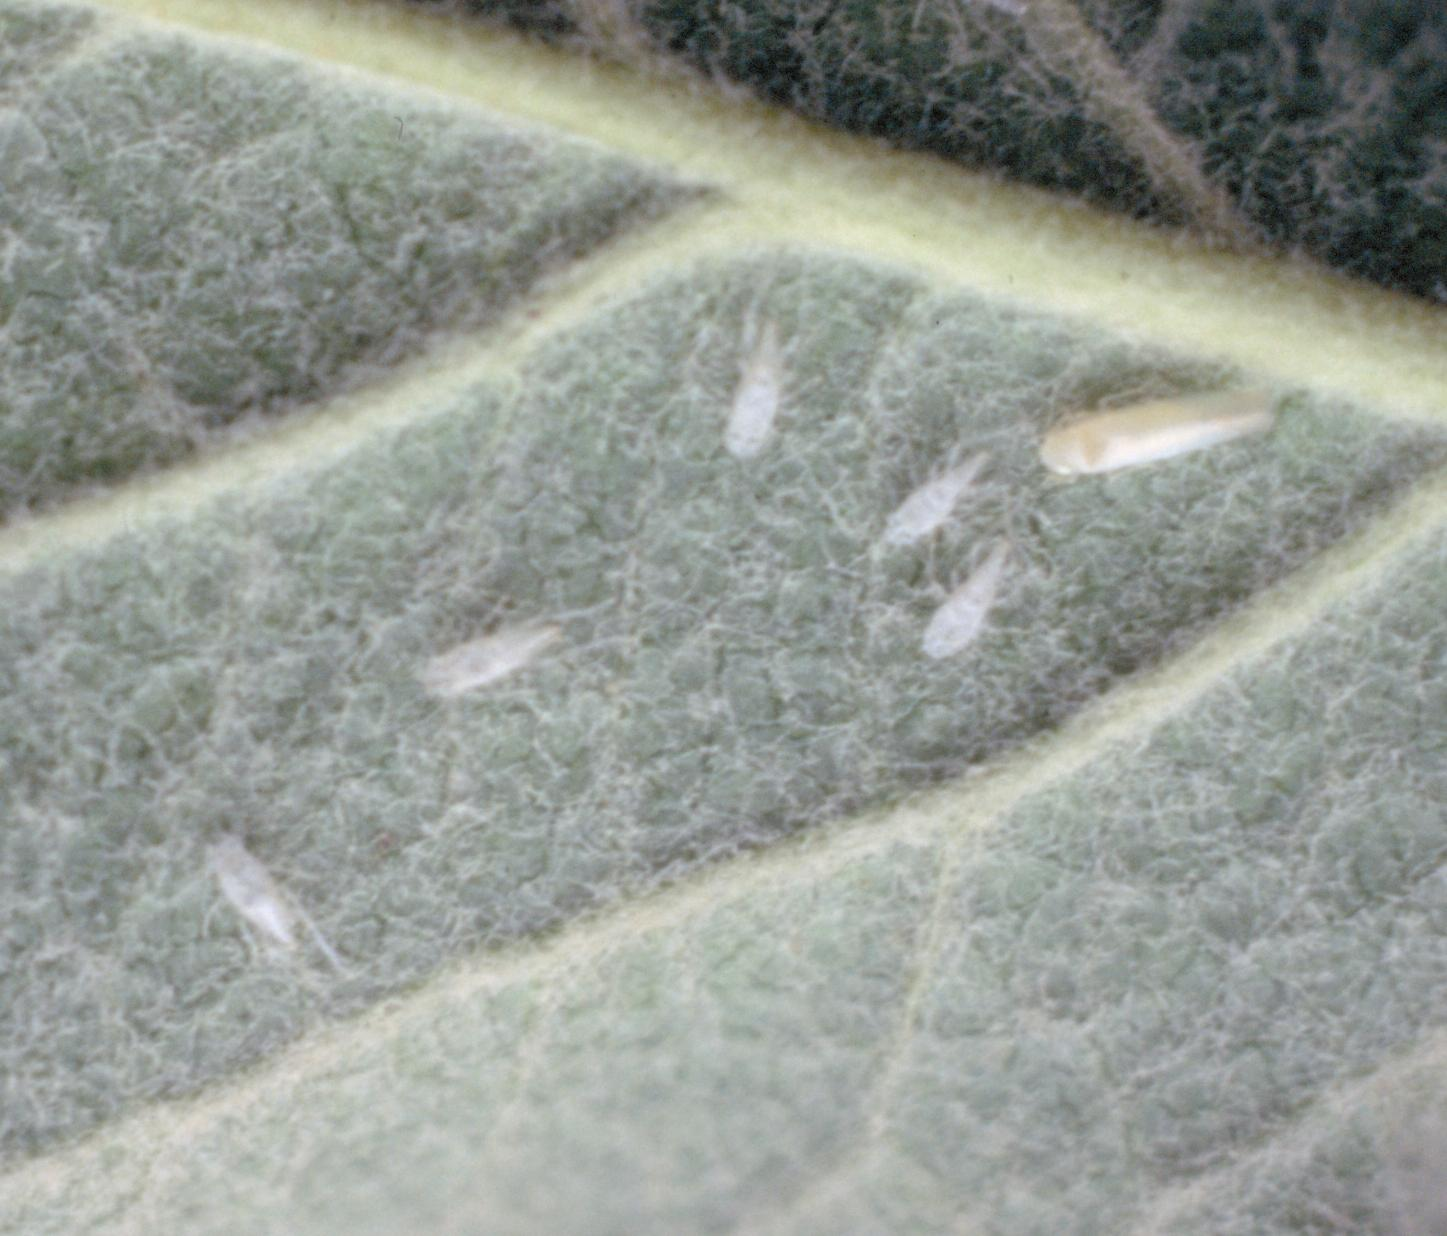 White apple leafhopper juveniles and adult (Bessin, UKY)